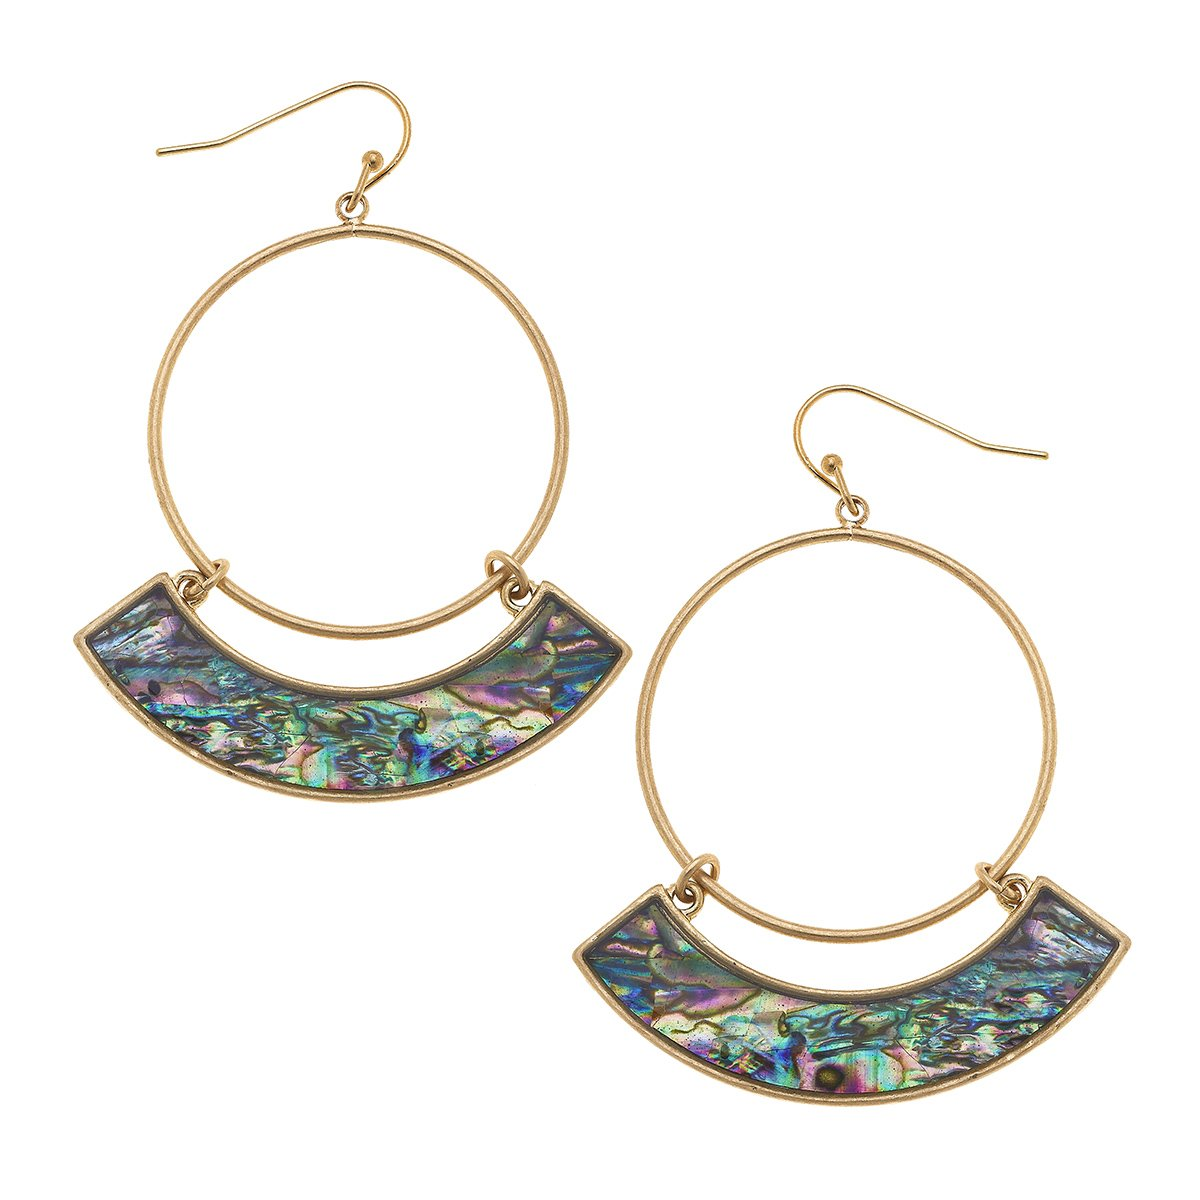 Maeve Hoop Earrings In Abalone Mother Of Pearl Shell